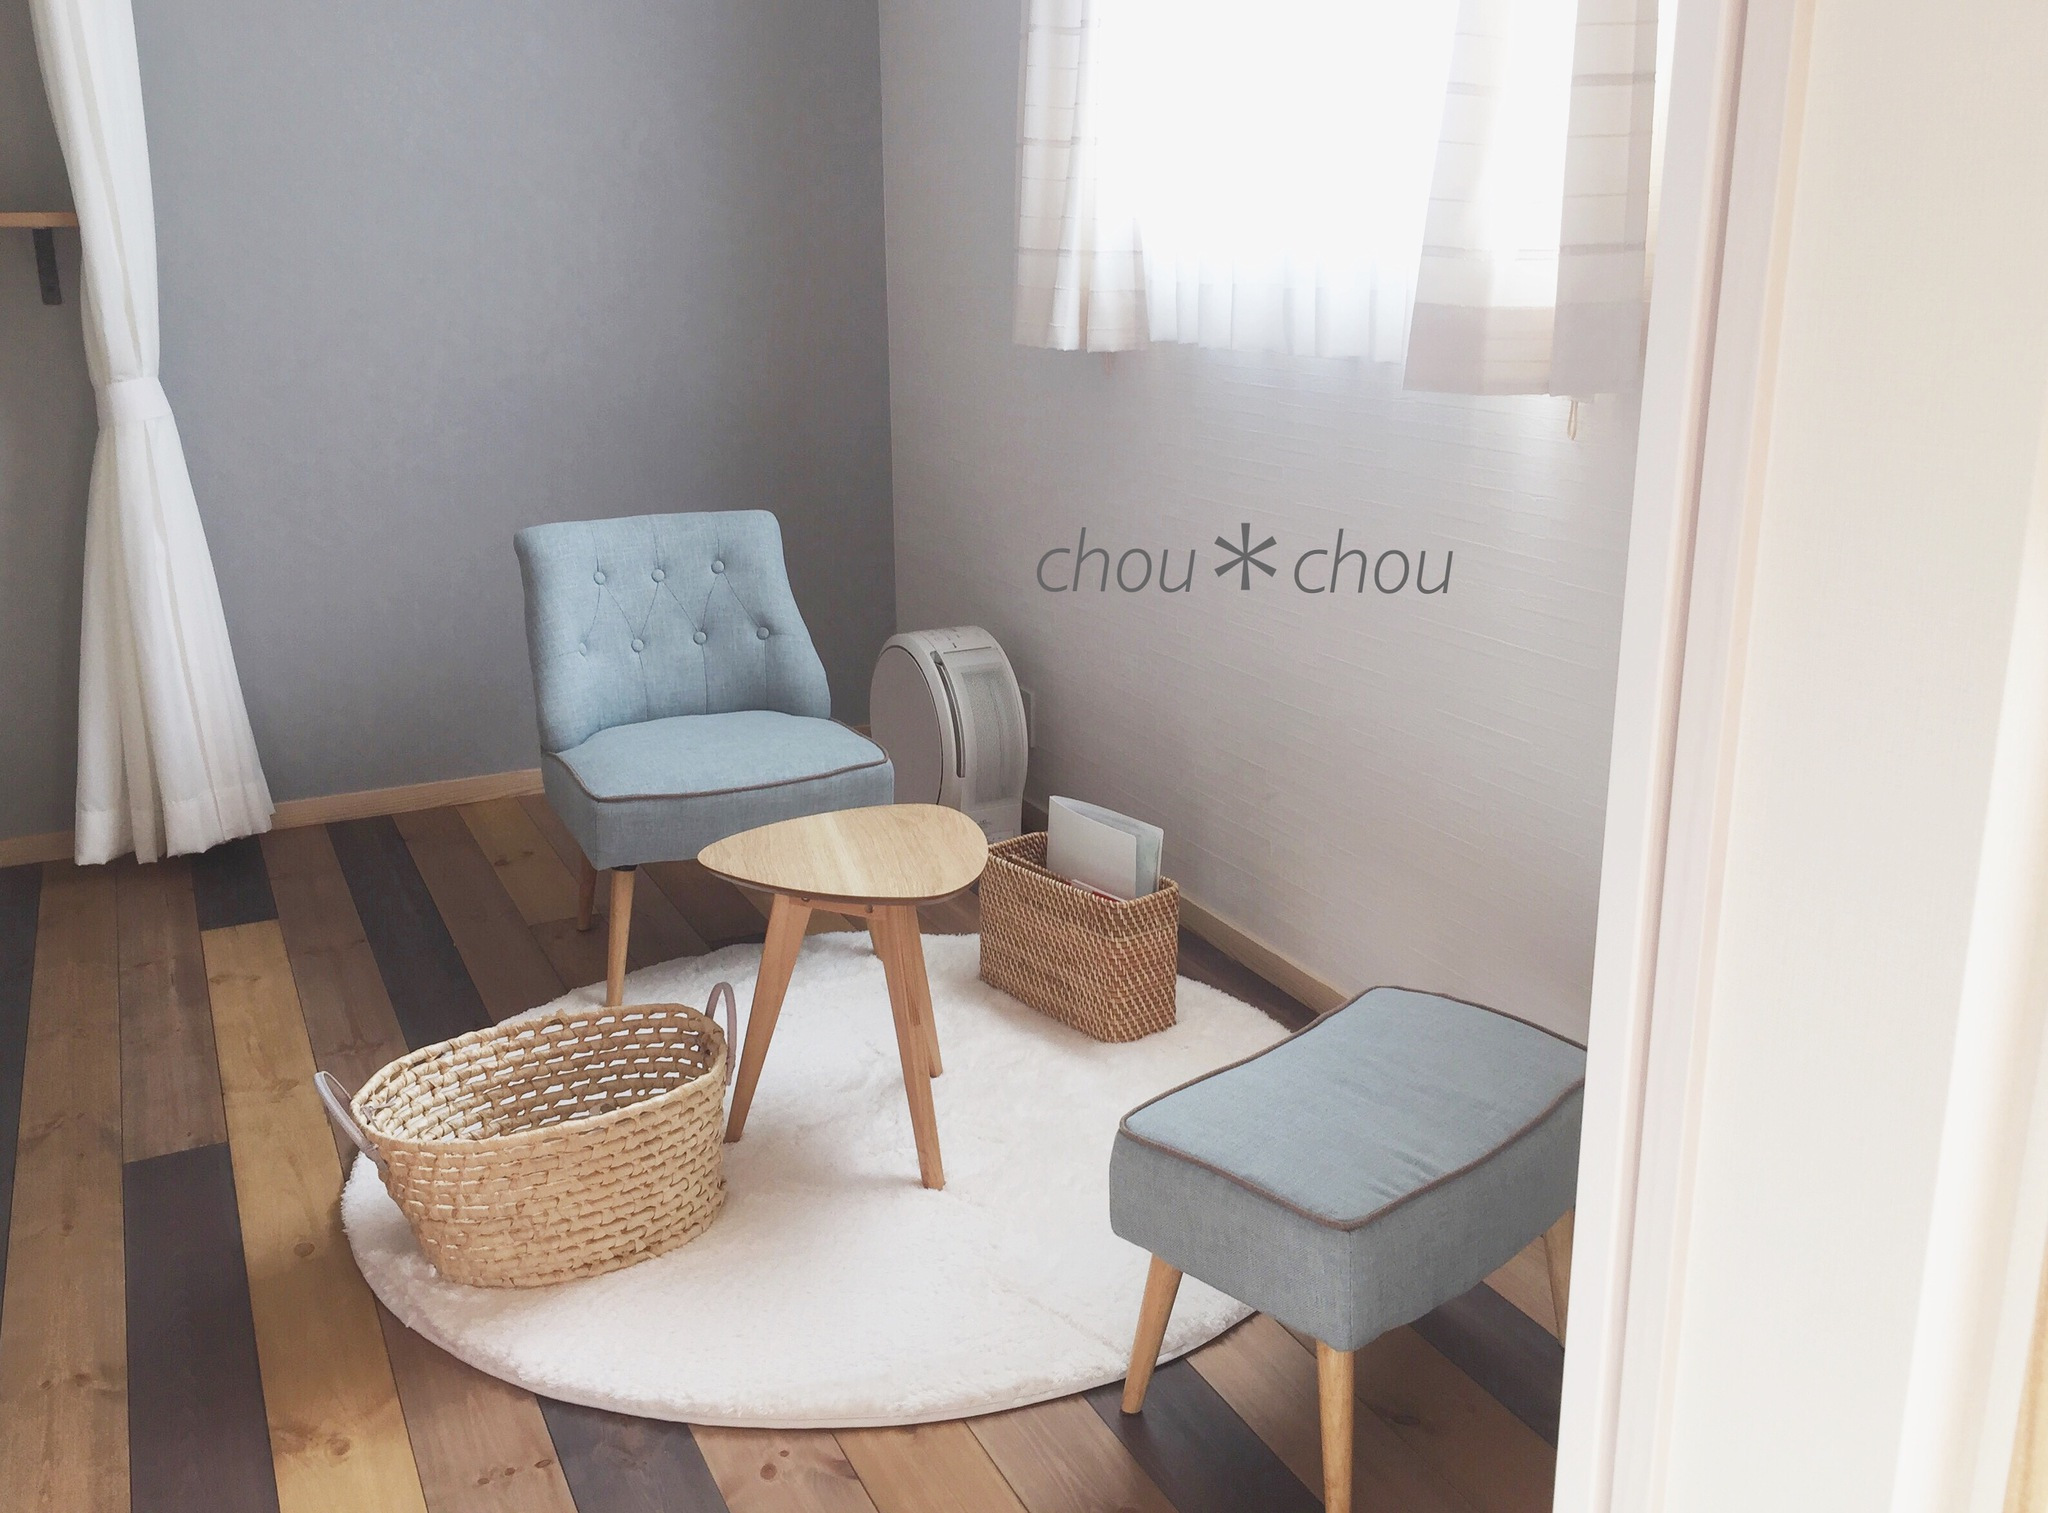 Chou chou for Salon by k chou